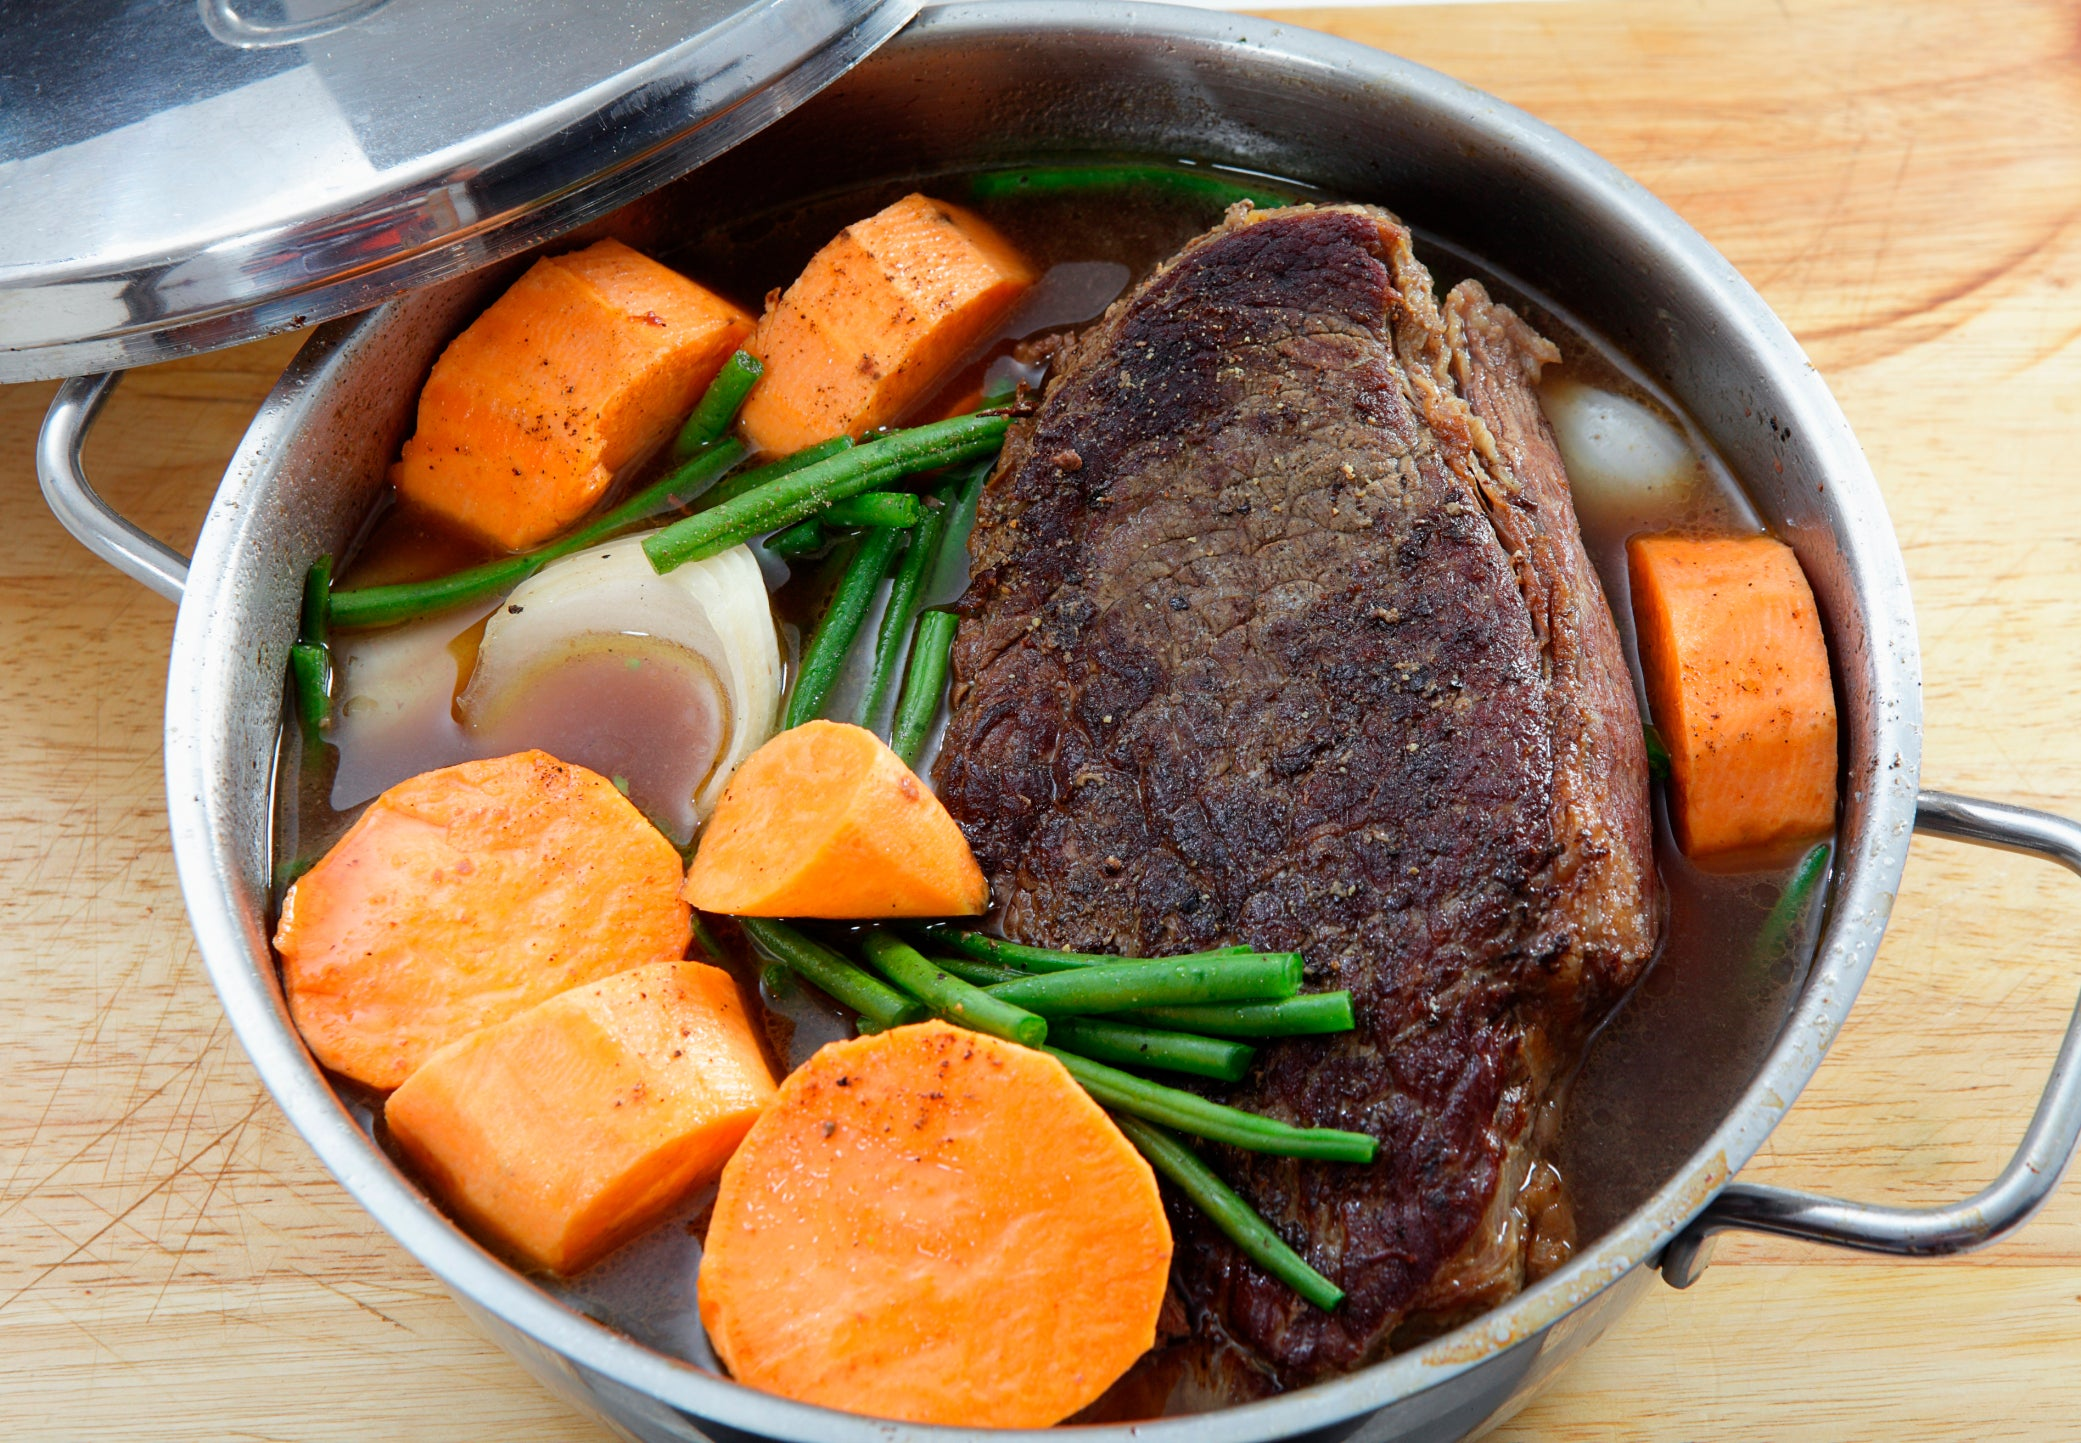 Delicious pot roast with veggies